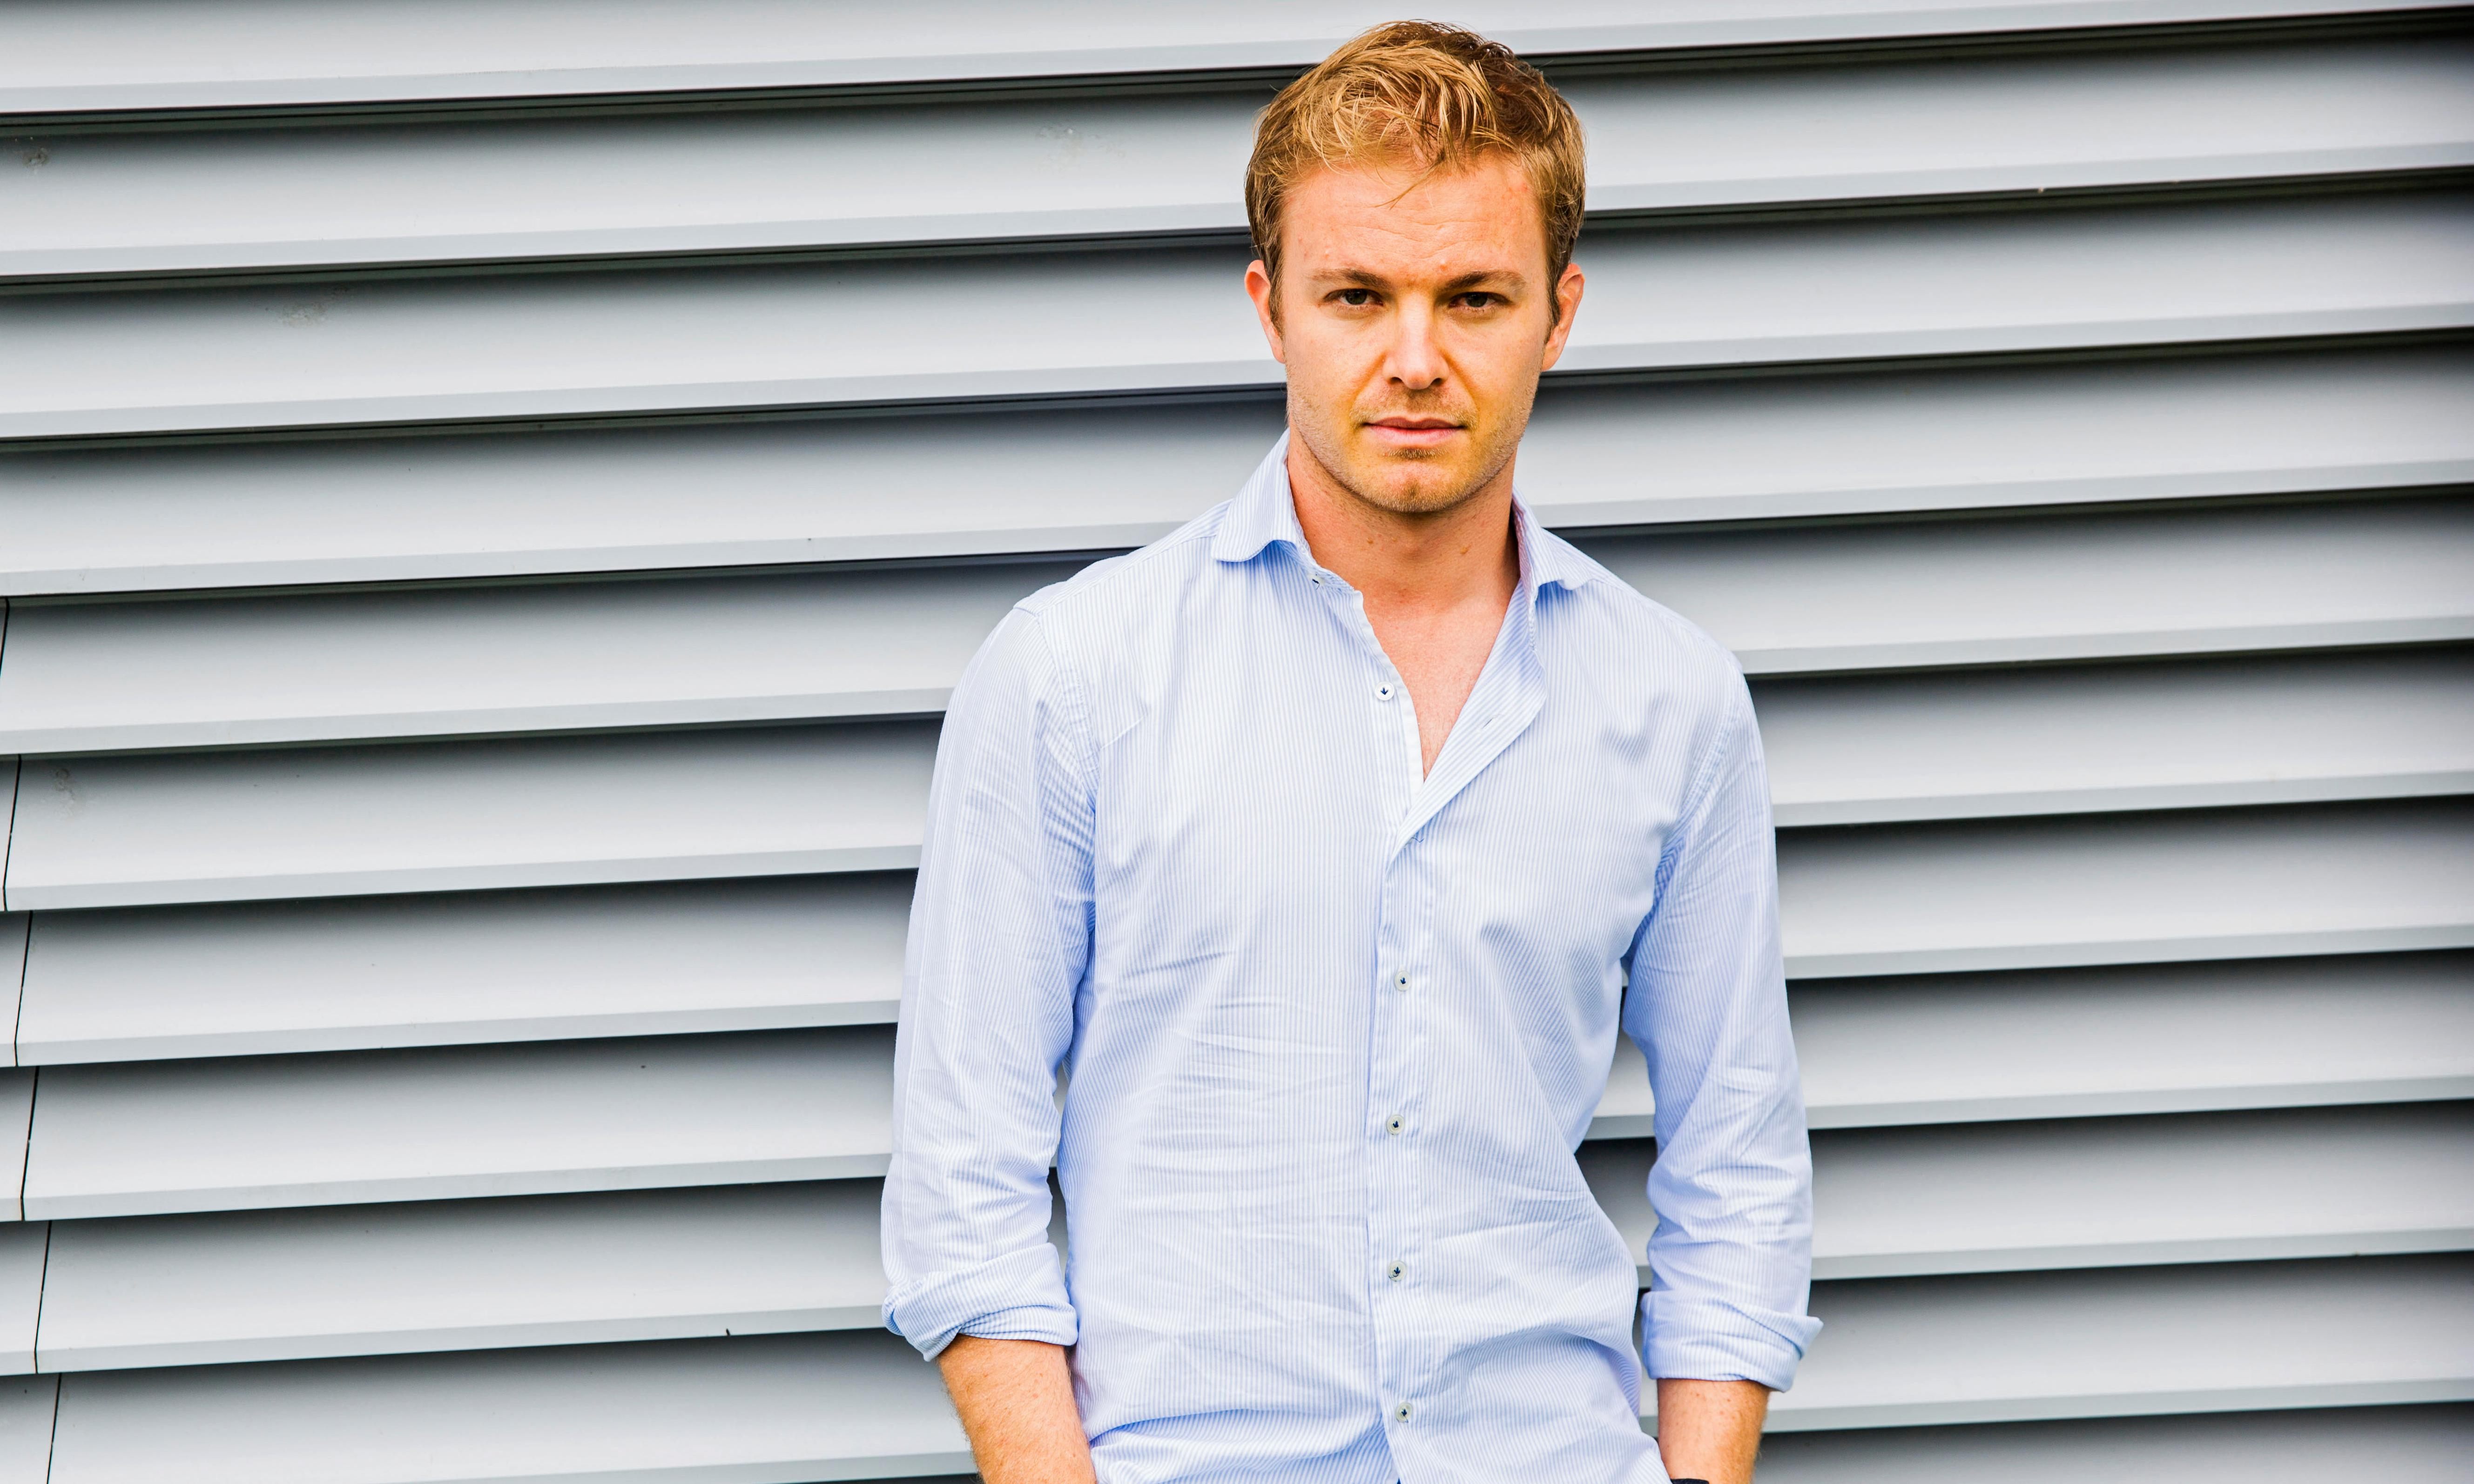 Nico Rosberg: 'I have huge respect for Lewis Hamilton but we are not best friends'